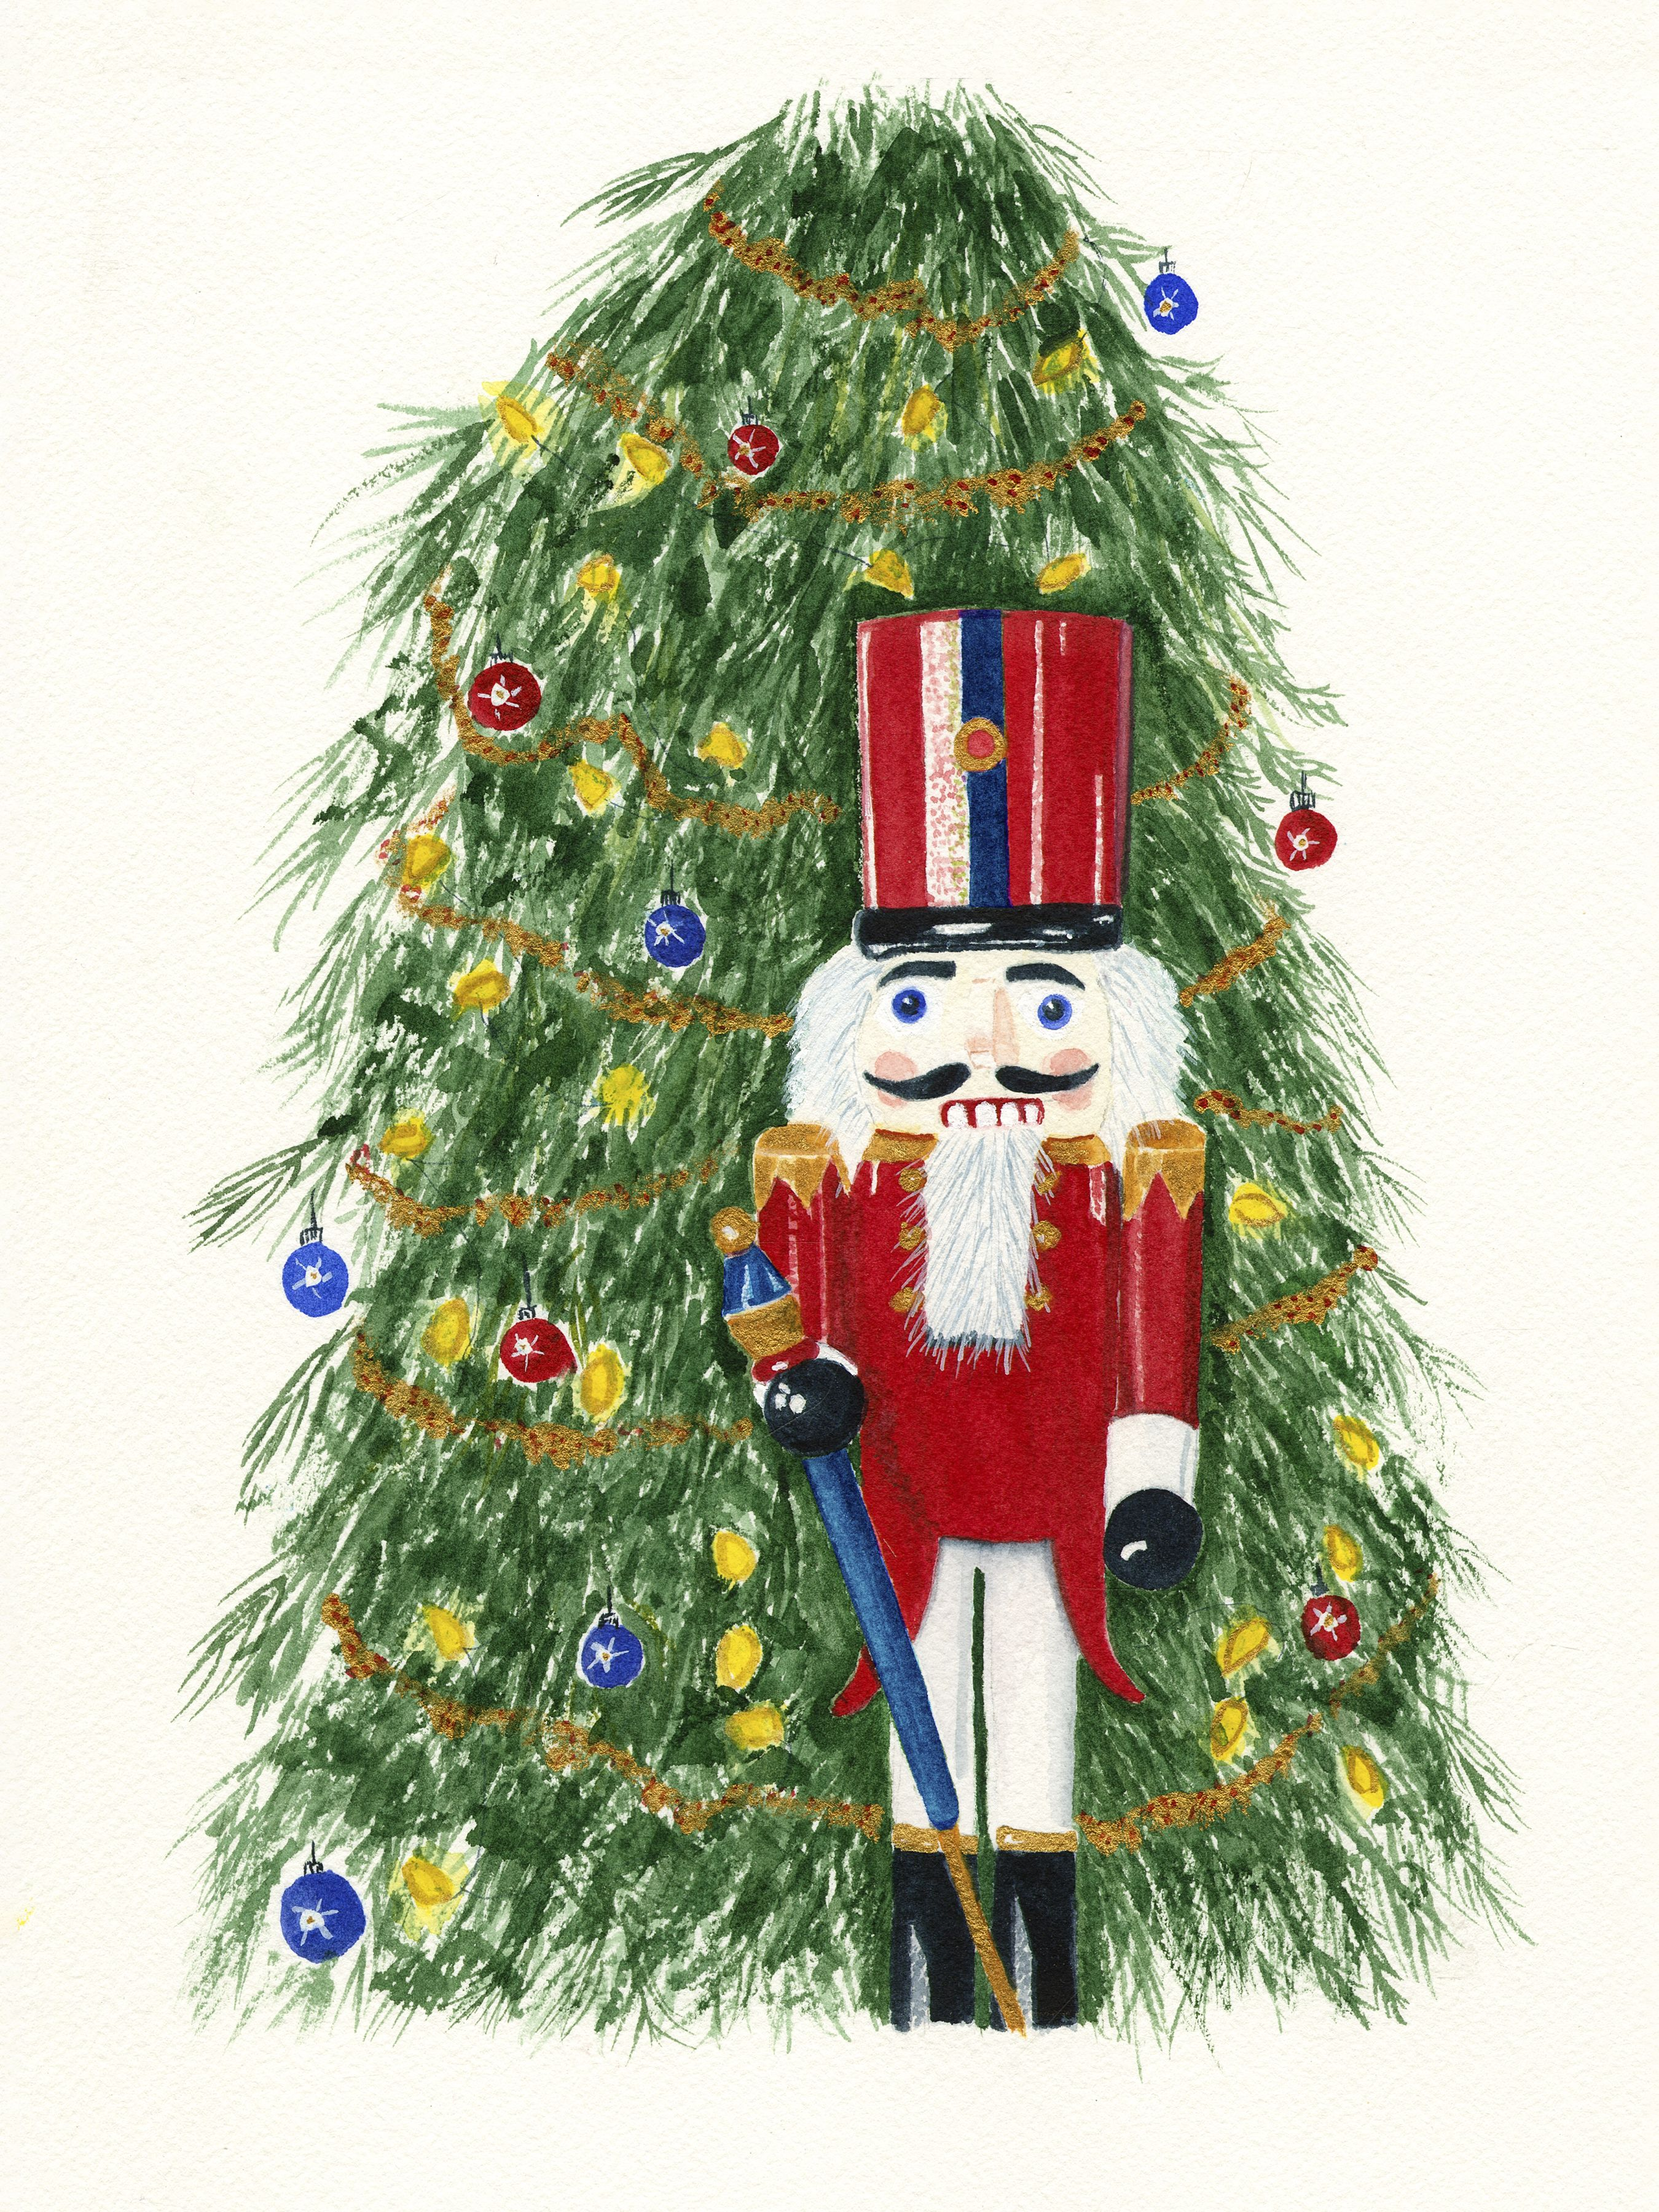 Watercolor Art Print Toy Soldier By Christmas Tree In 2020 Watercolor Christmas Tree Christmas Tree Painting Watercolor Art Prints